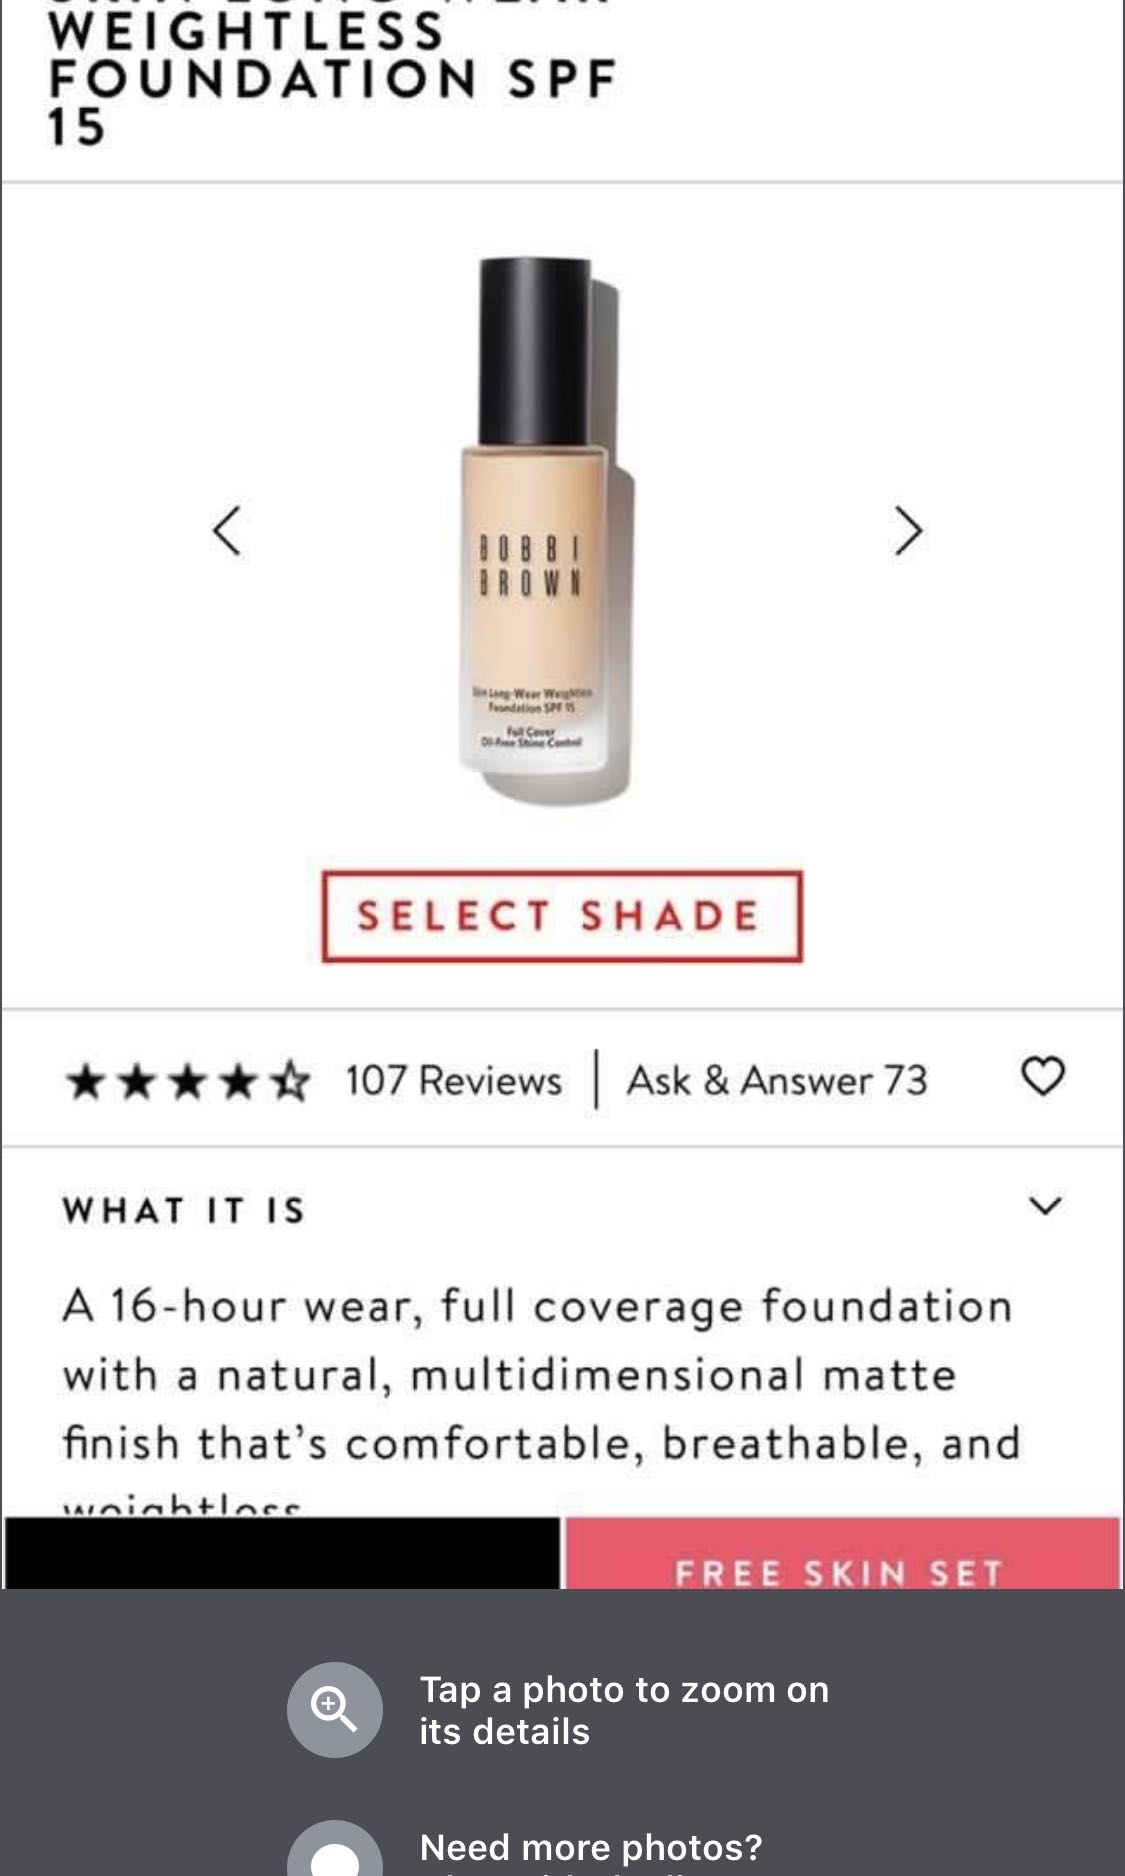 Bobbi Brown Skin Long Wear Weightless Foundation Spf 15 Health